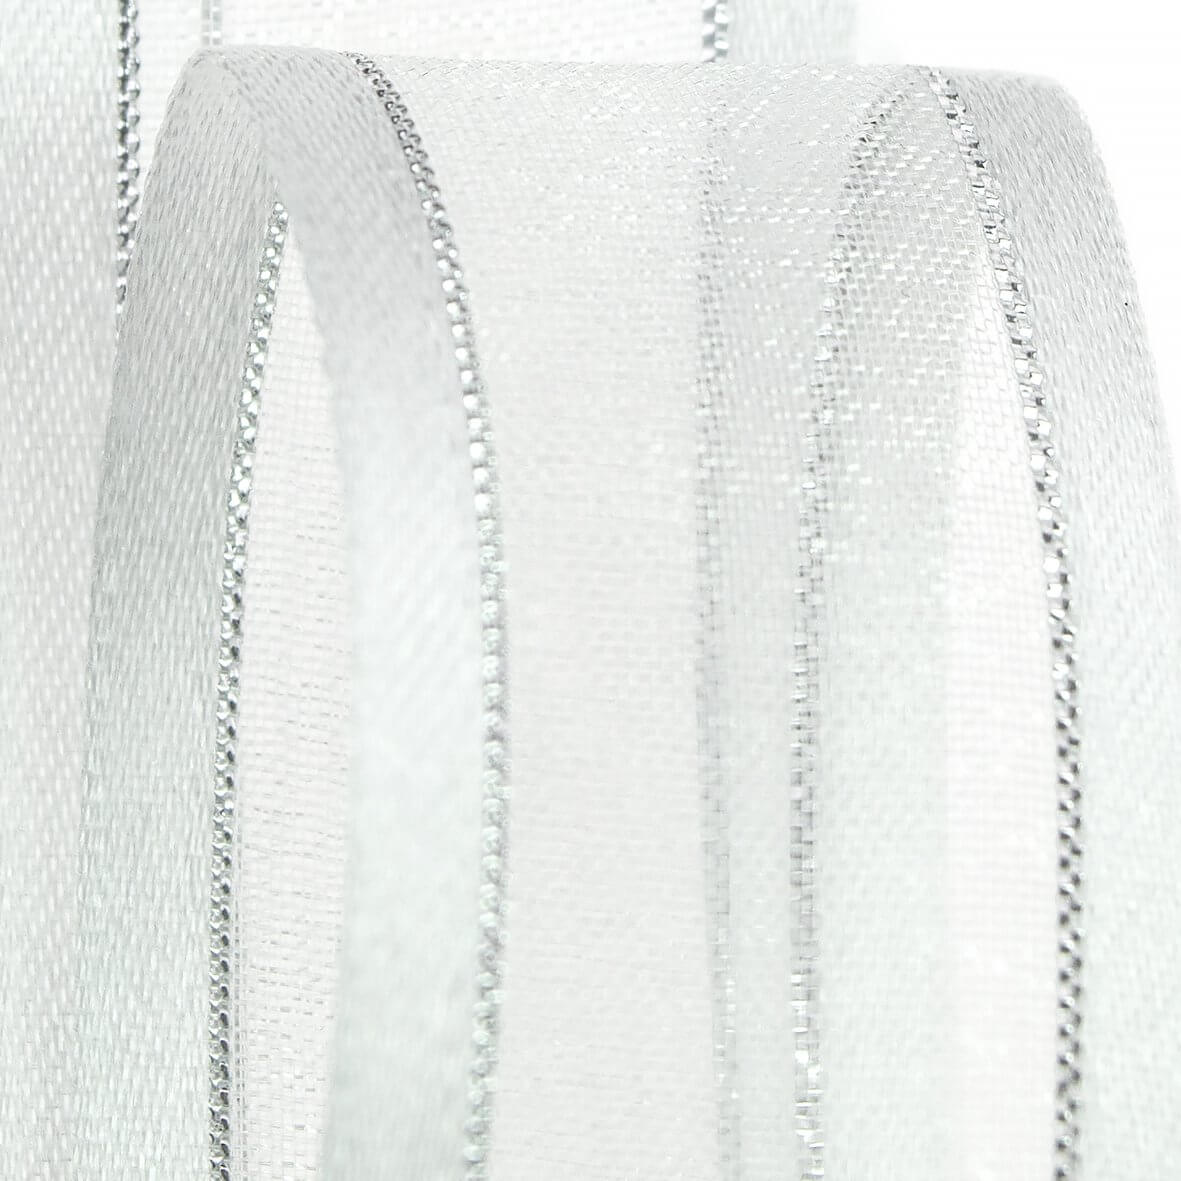 Club Green Organza Ribbon- Satin Edged with Metallic Thread - 23mm wide - White with Silver Thread - Zoom